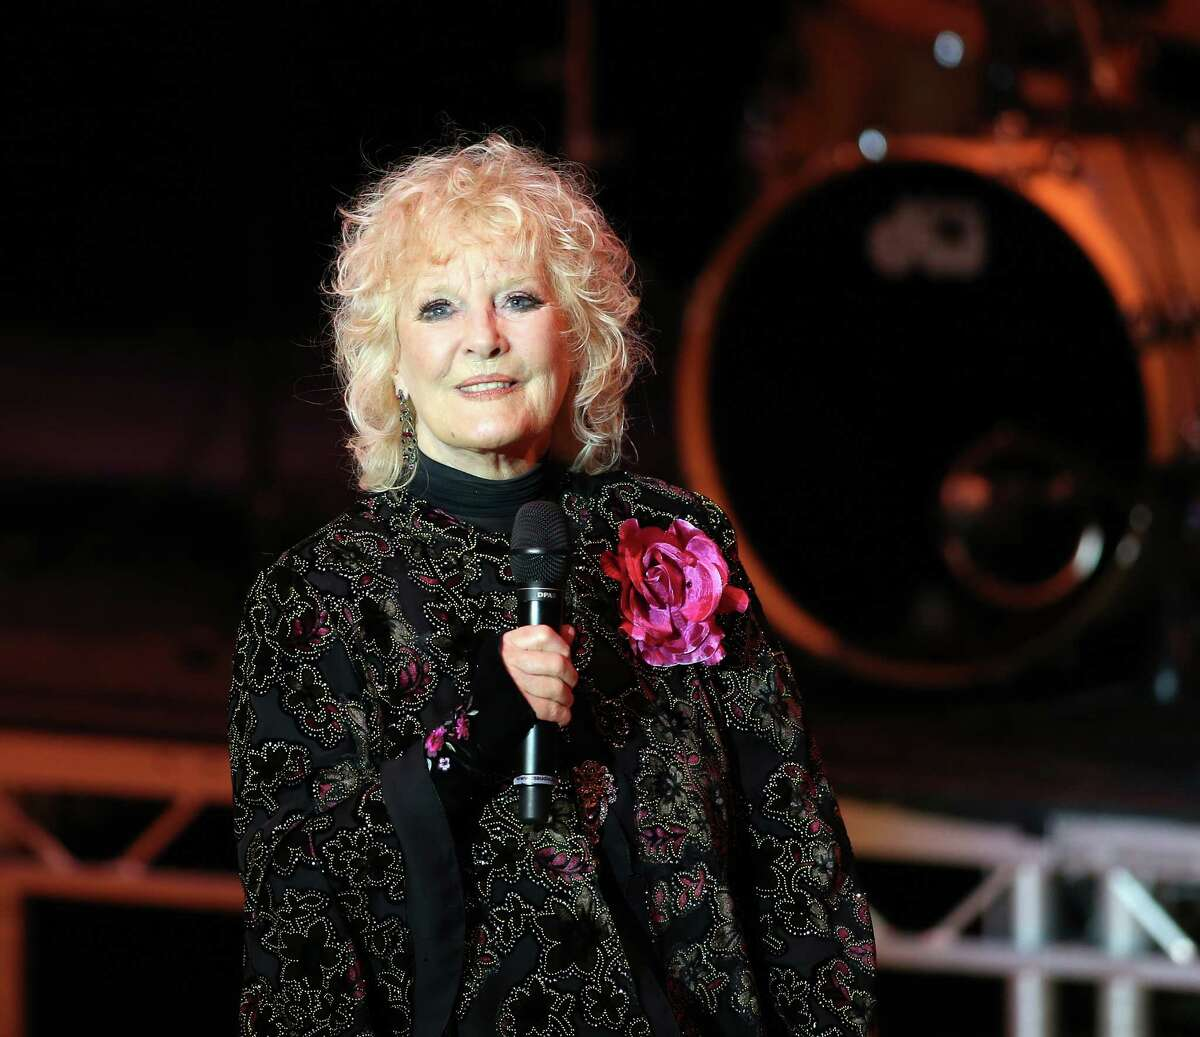 The nostalgia factor will be off the charts at this intimate concert with the British pop singer and actress, whose career began on BBC radio during World War II when she was 9 years old. She's best known for her work in the '60s -- sparkly pop hits such as